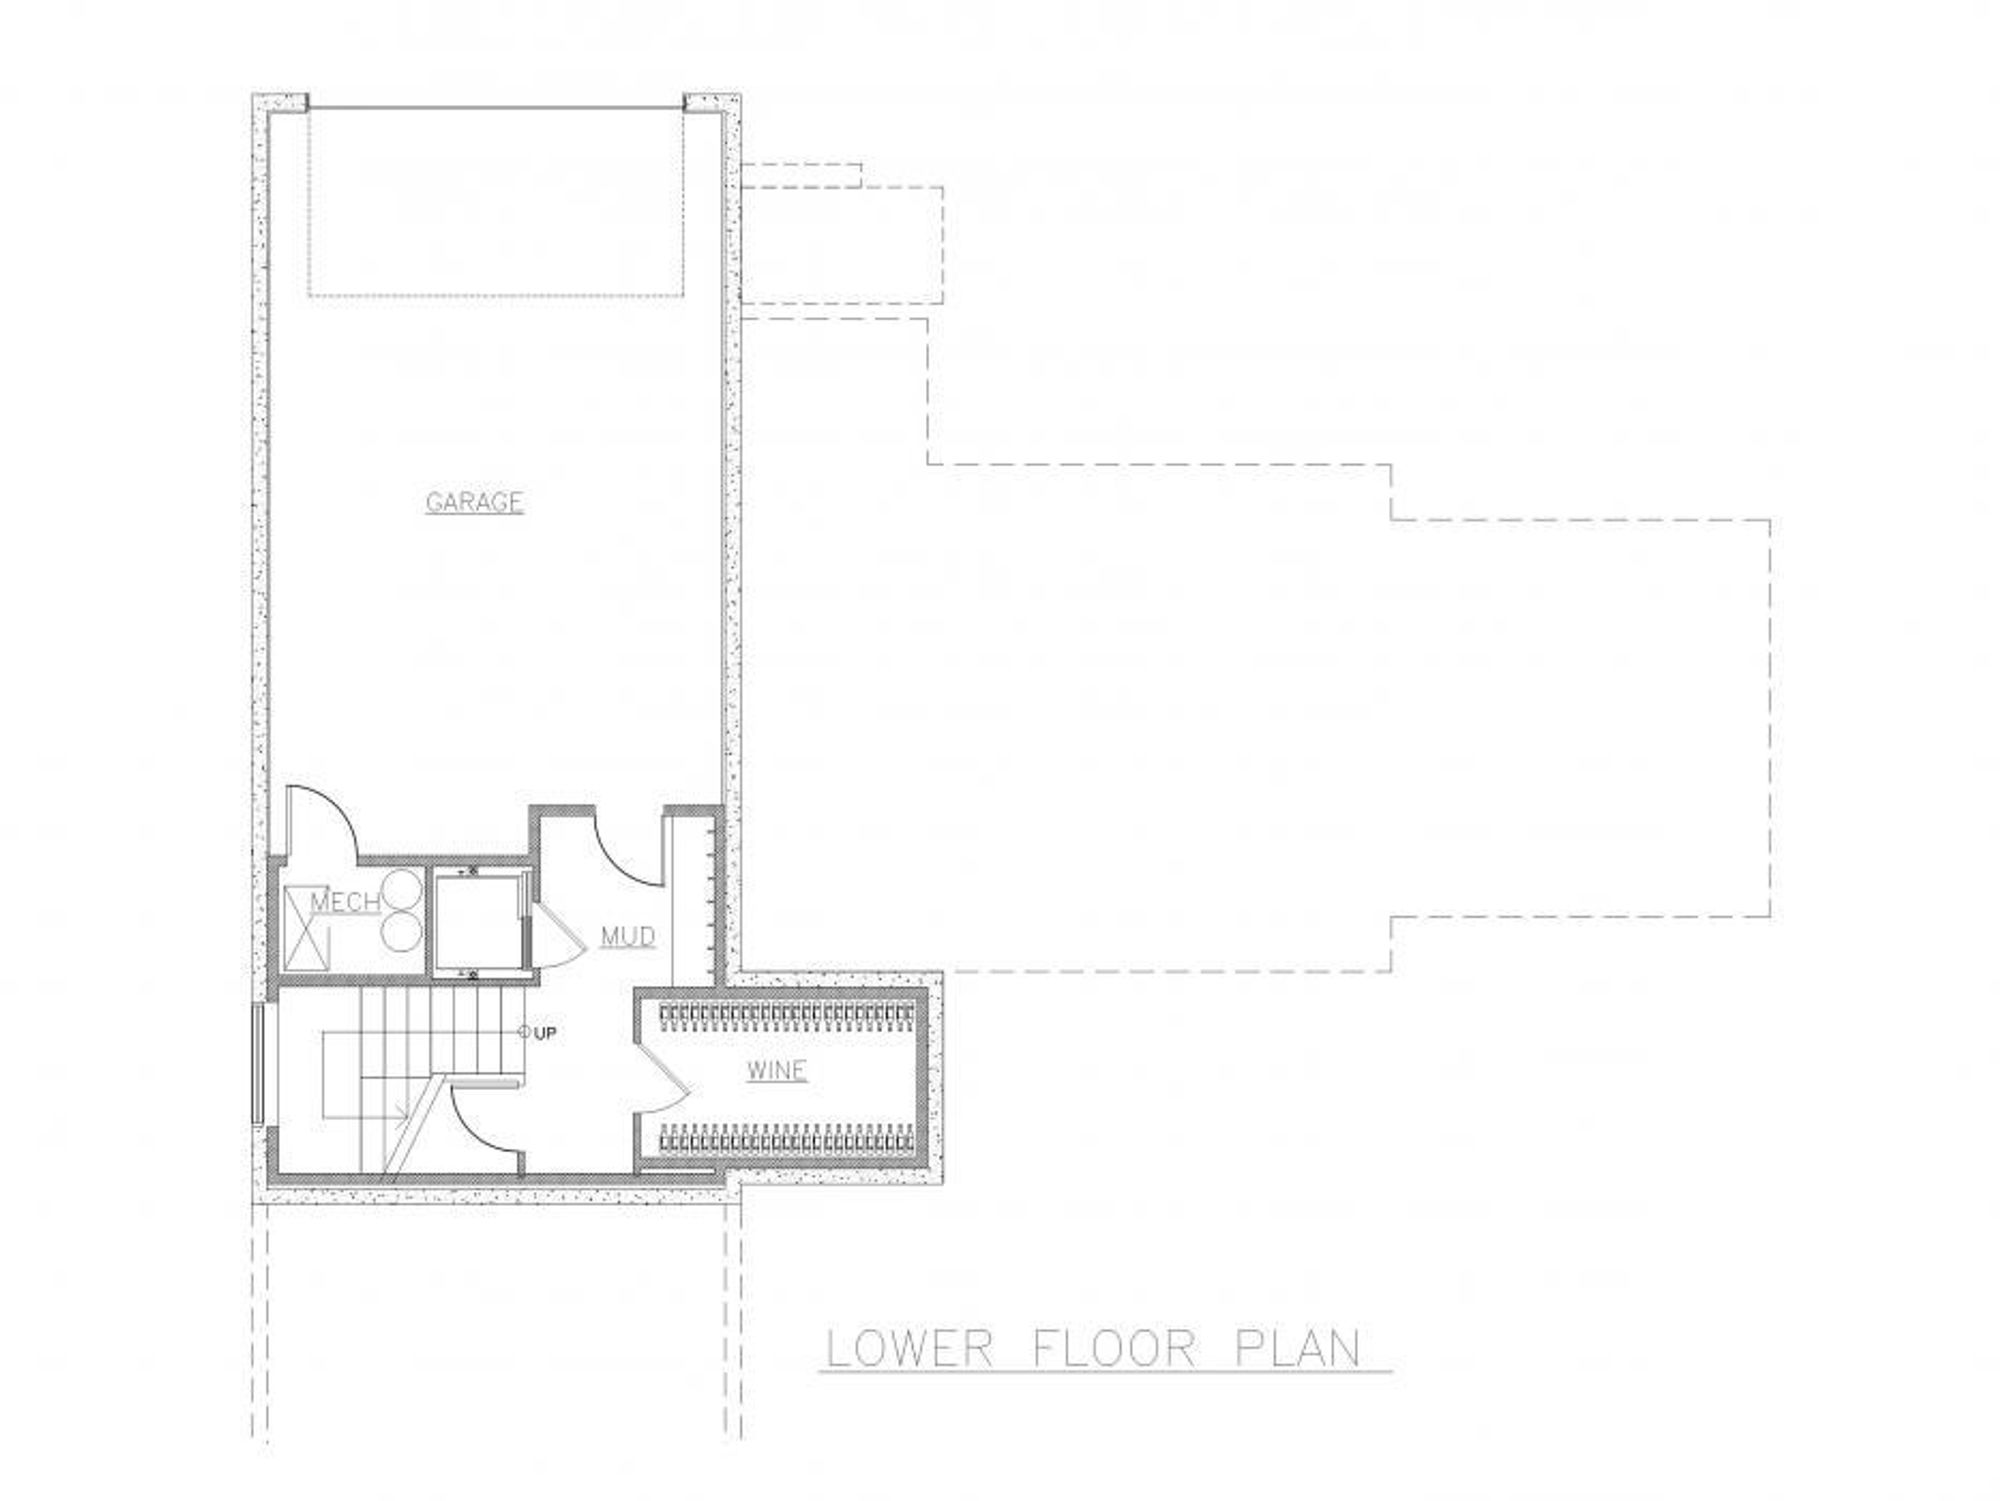 Stockholm Lower Floor Plan